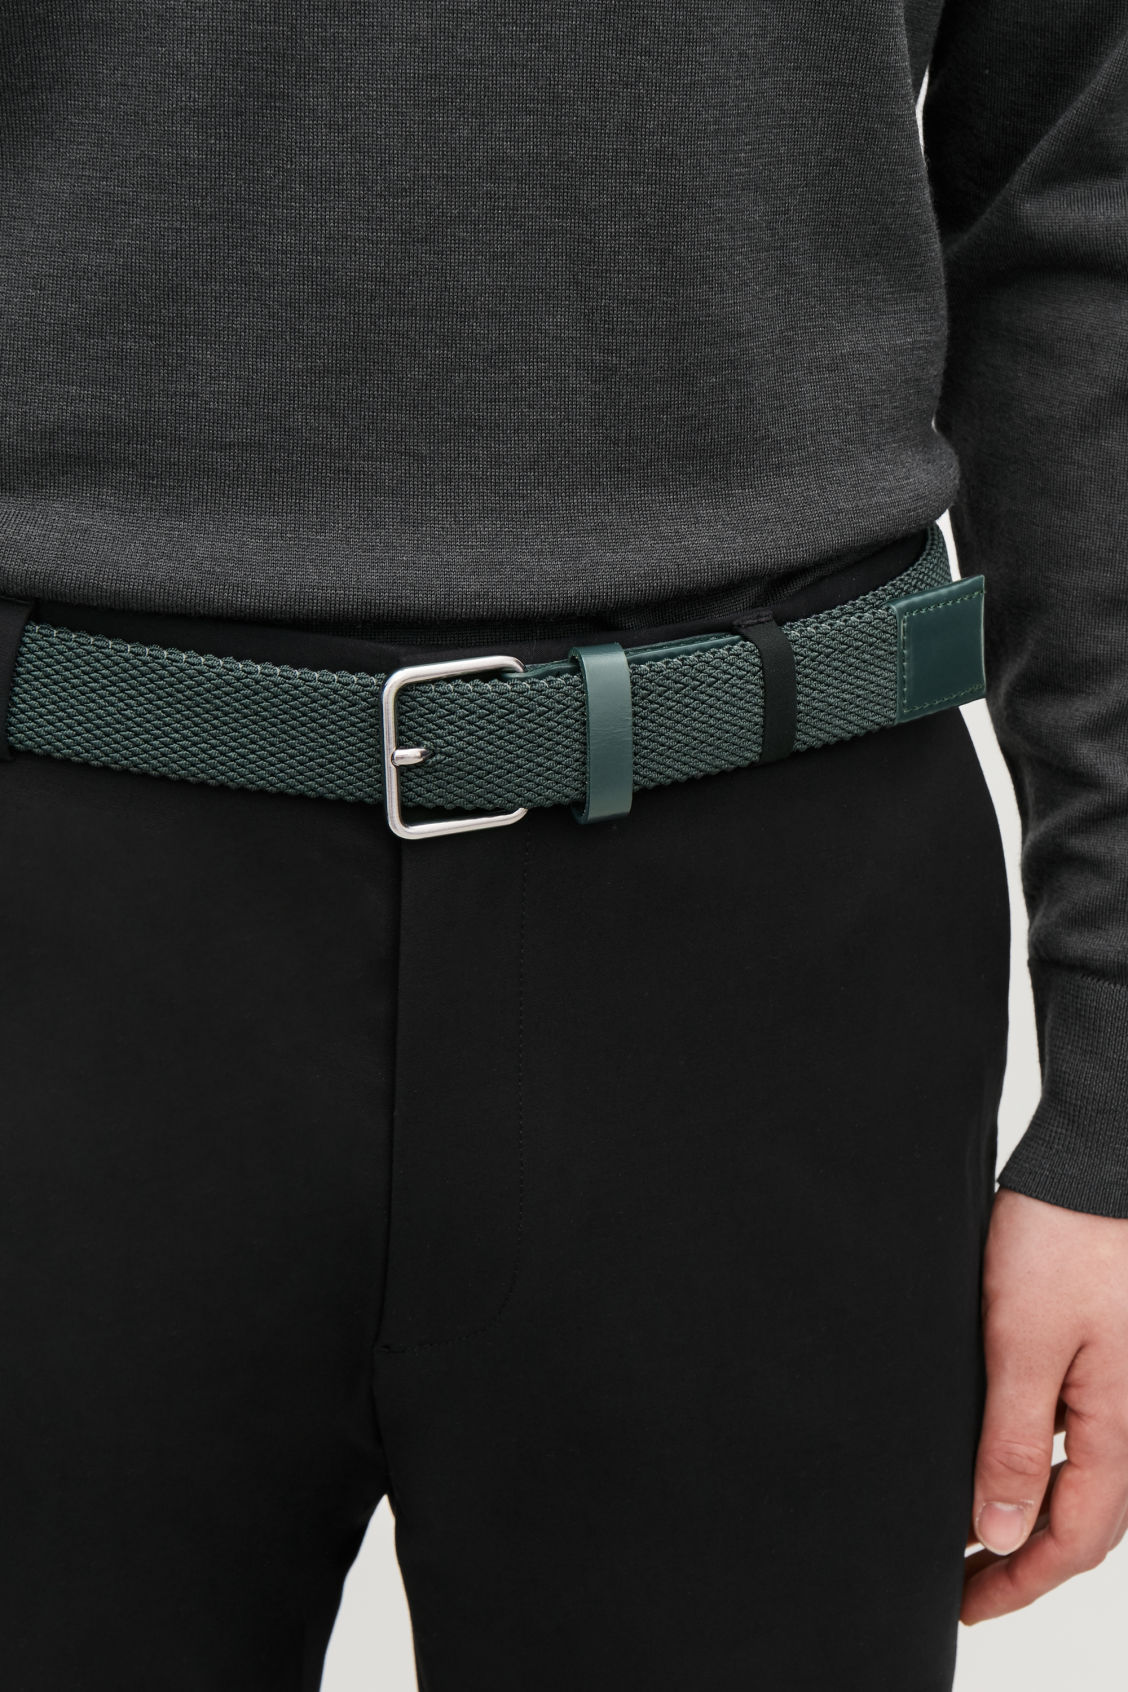 Detailed image of Cos textured elastic belt in green